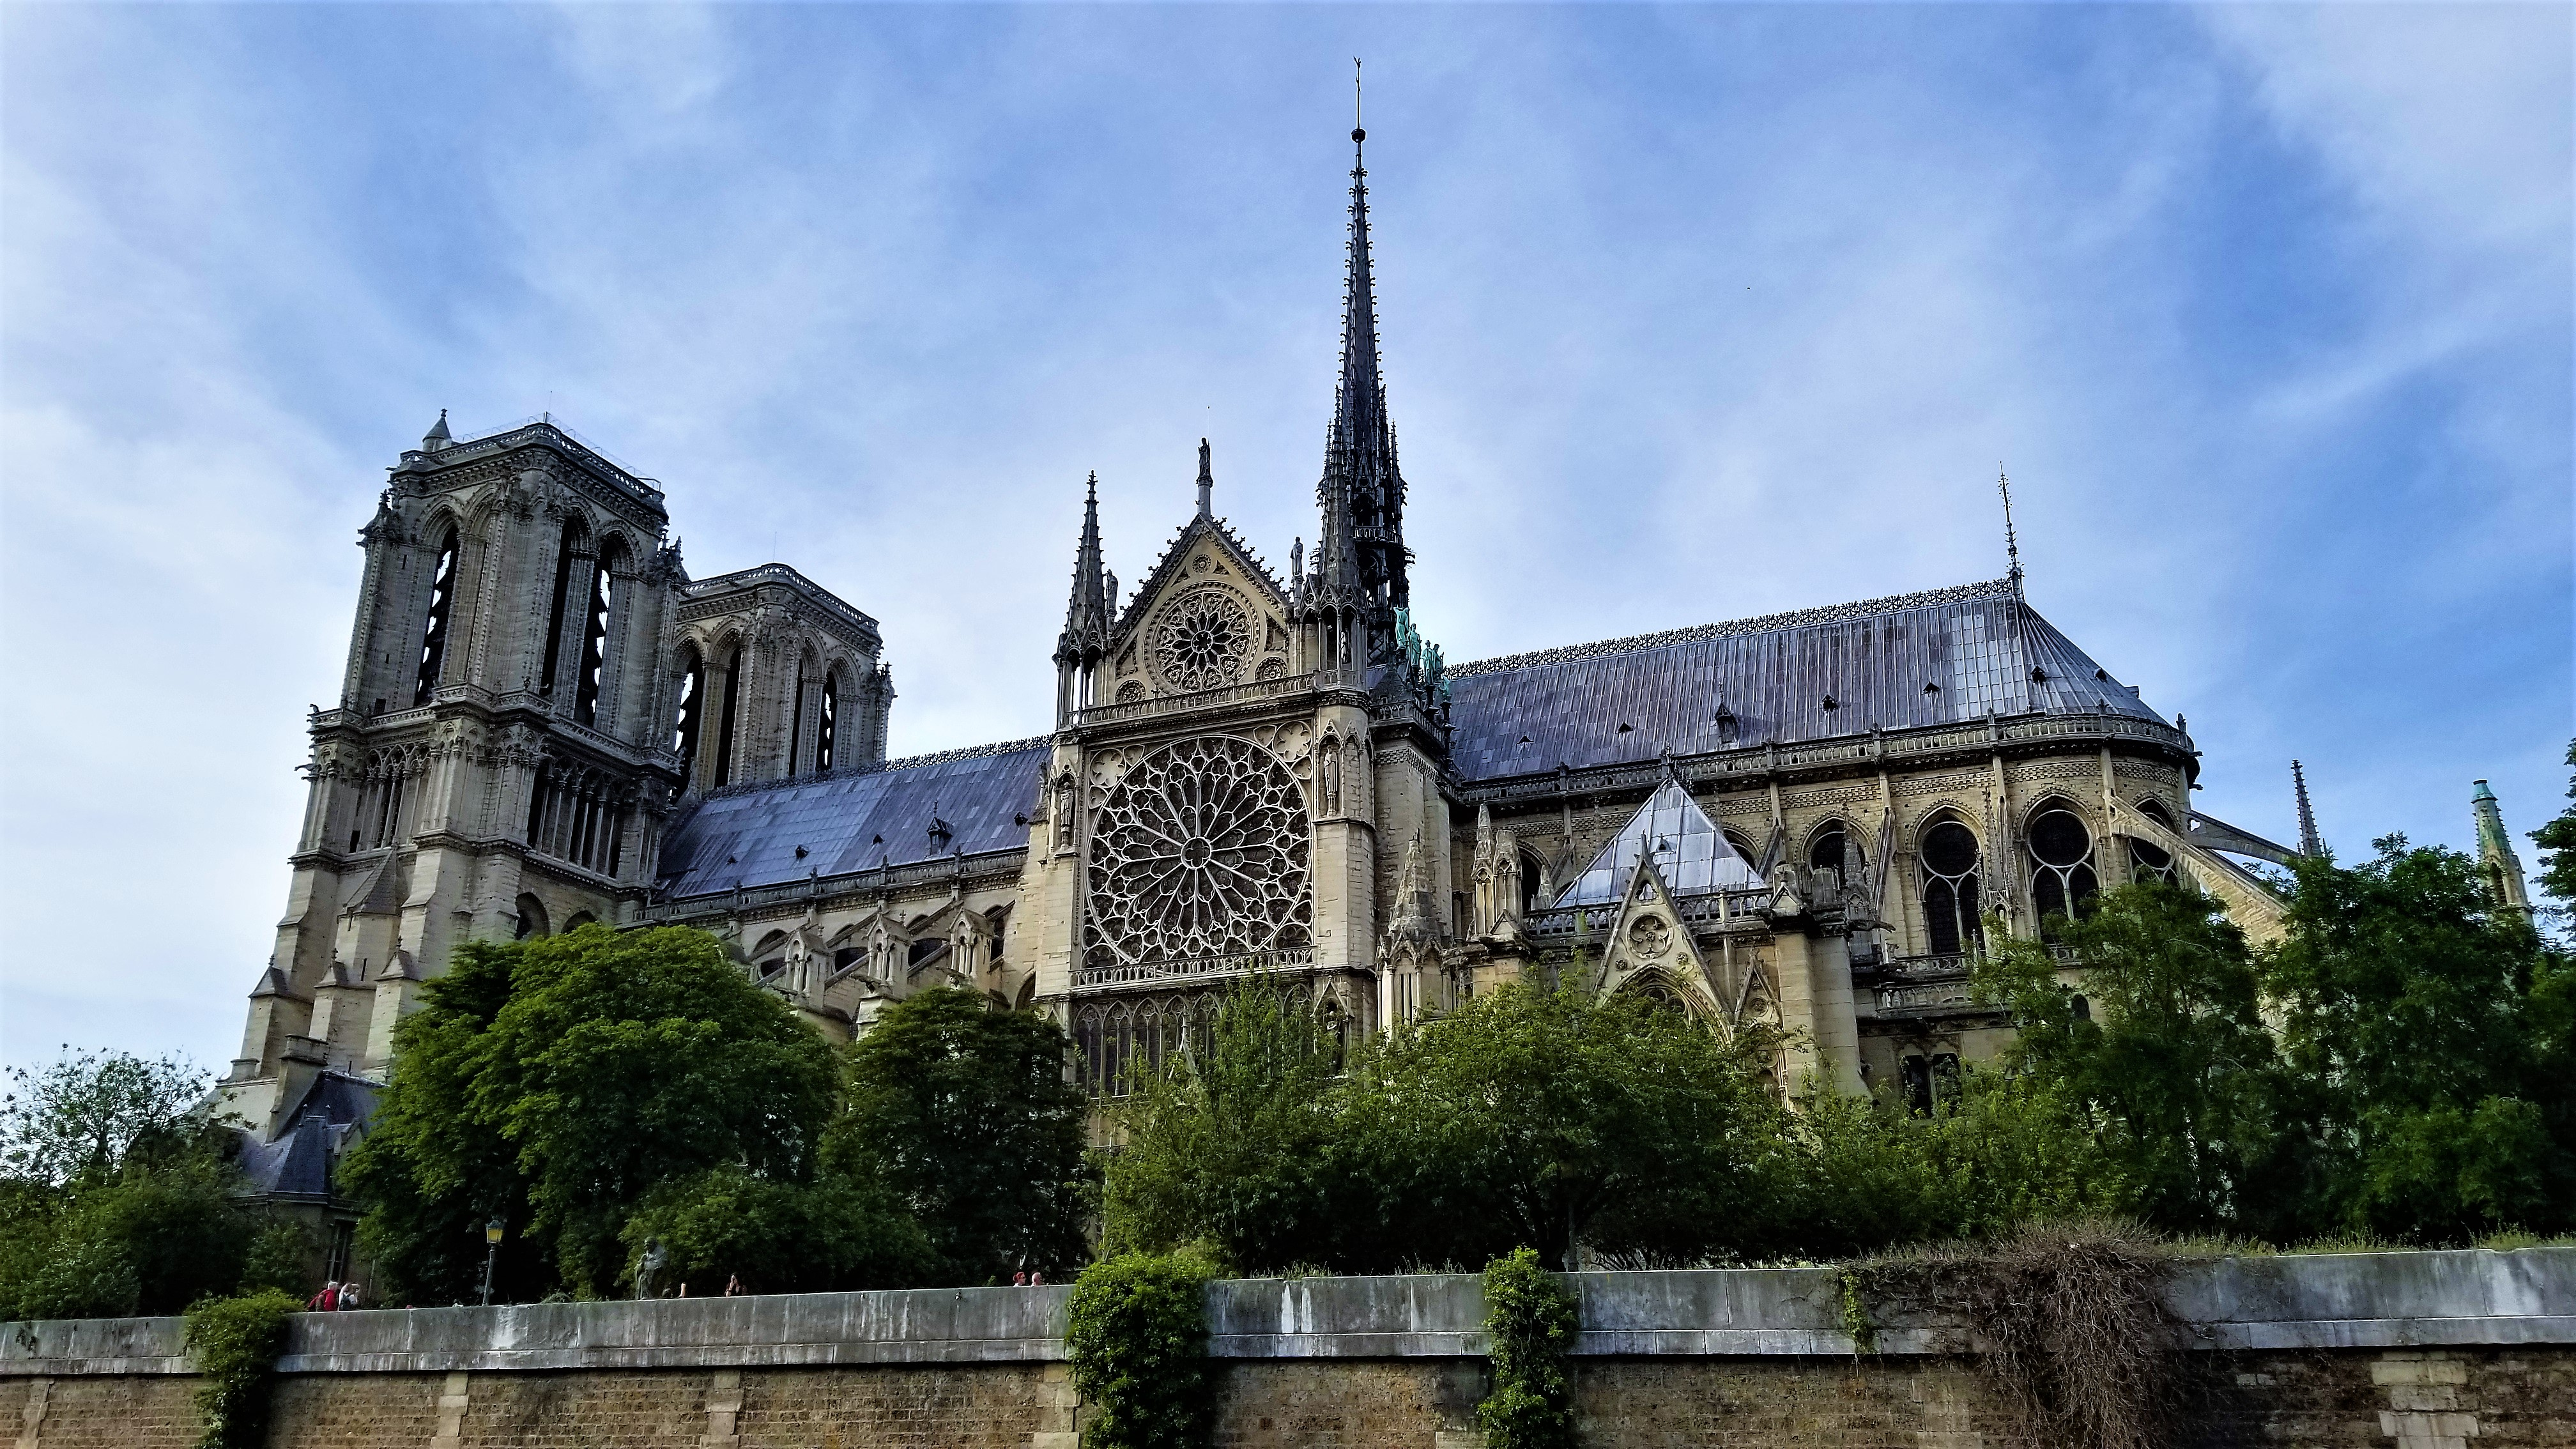 Final view of Notre Dame